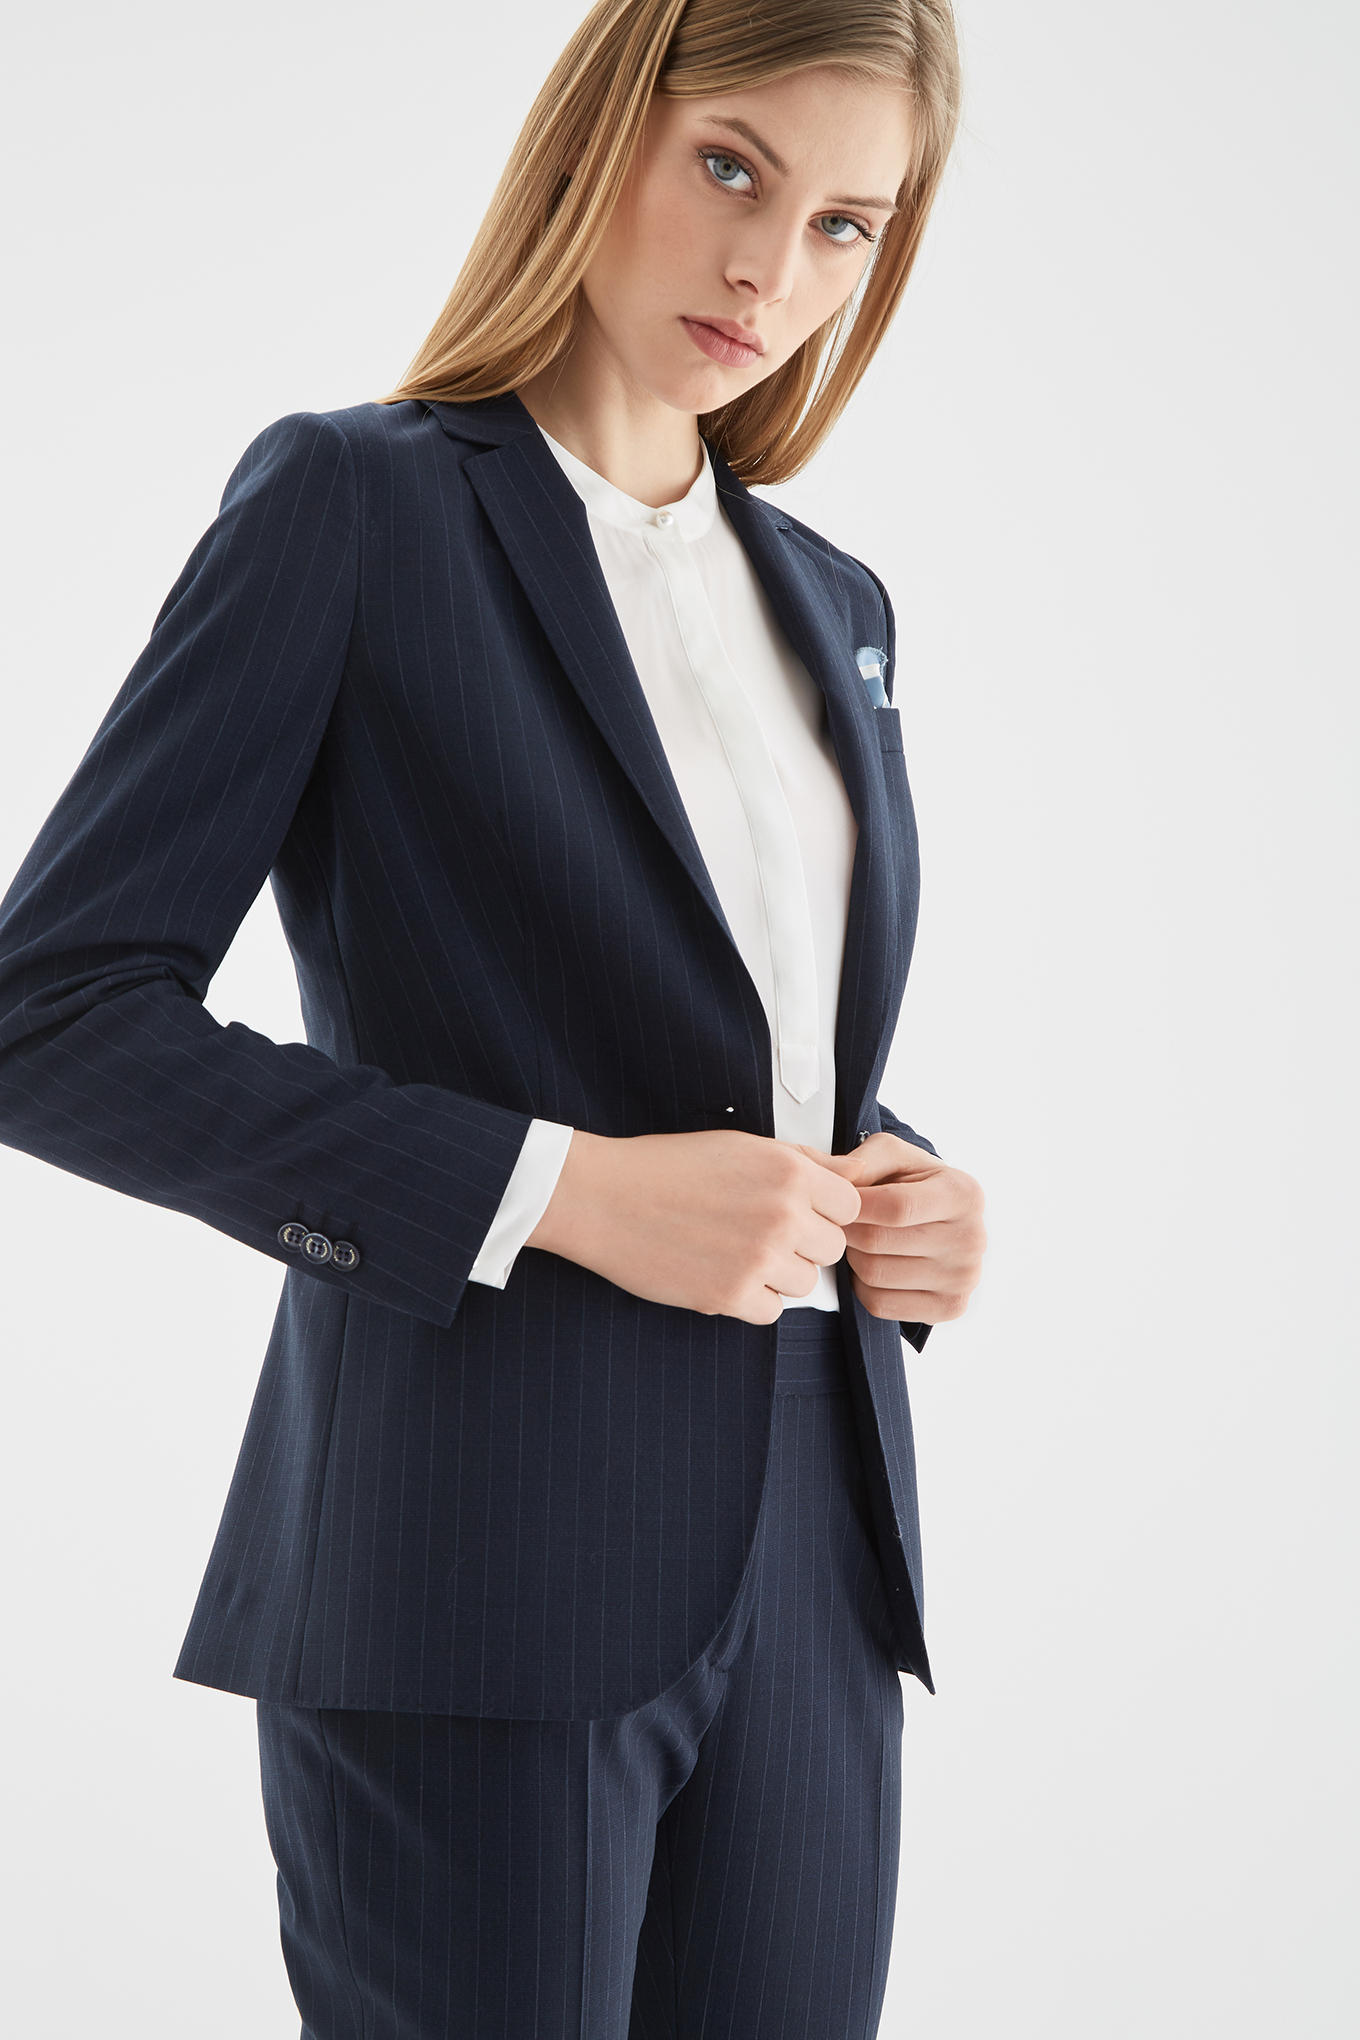 Suit Stripes Classic Woman